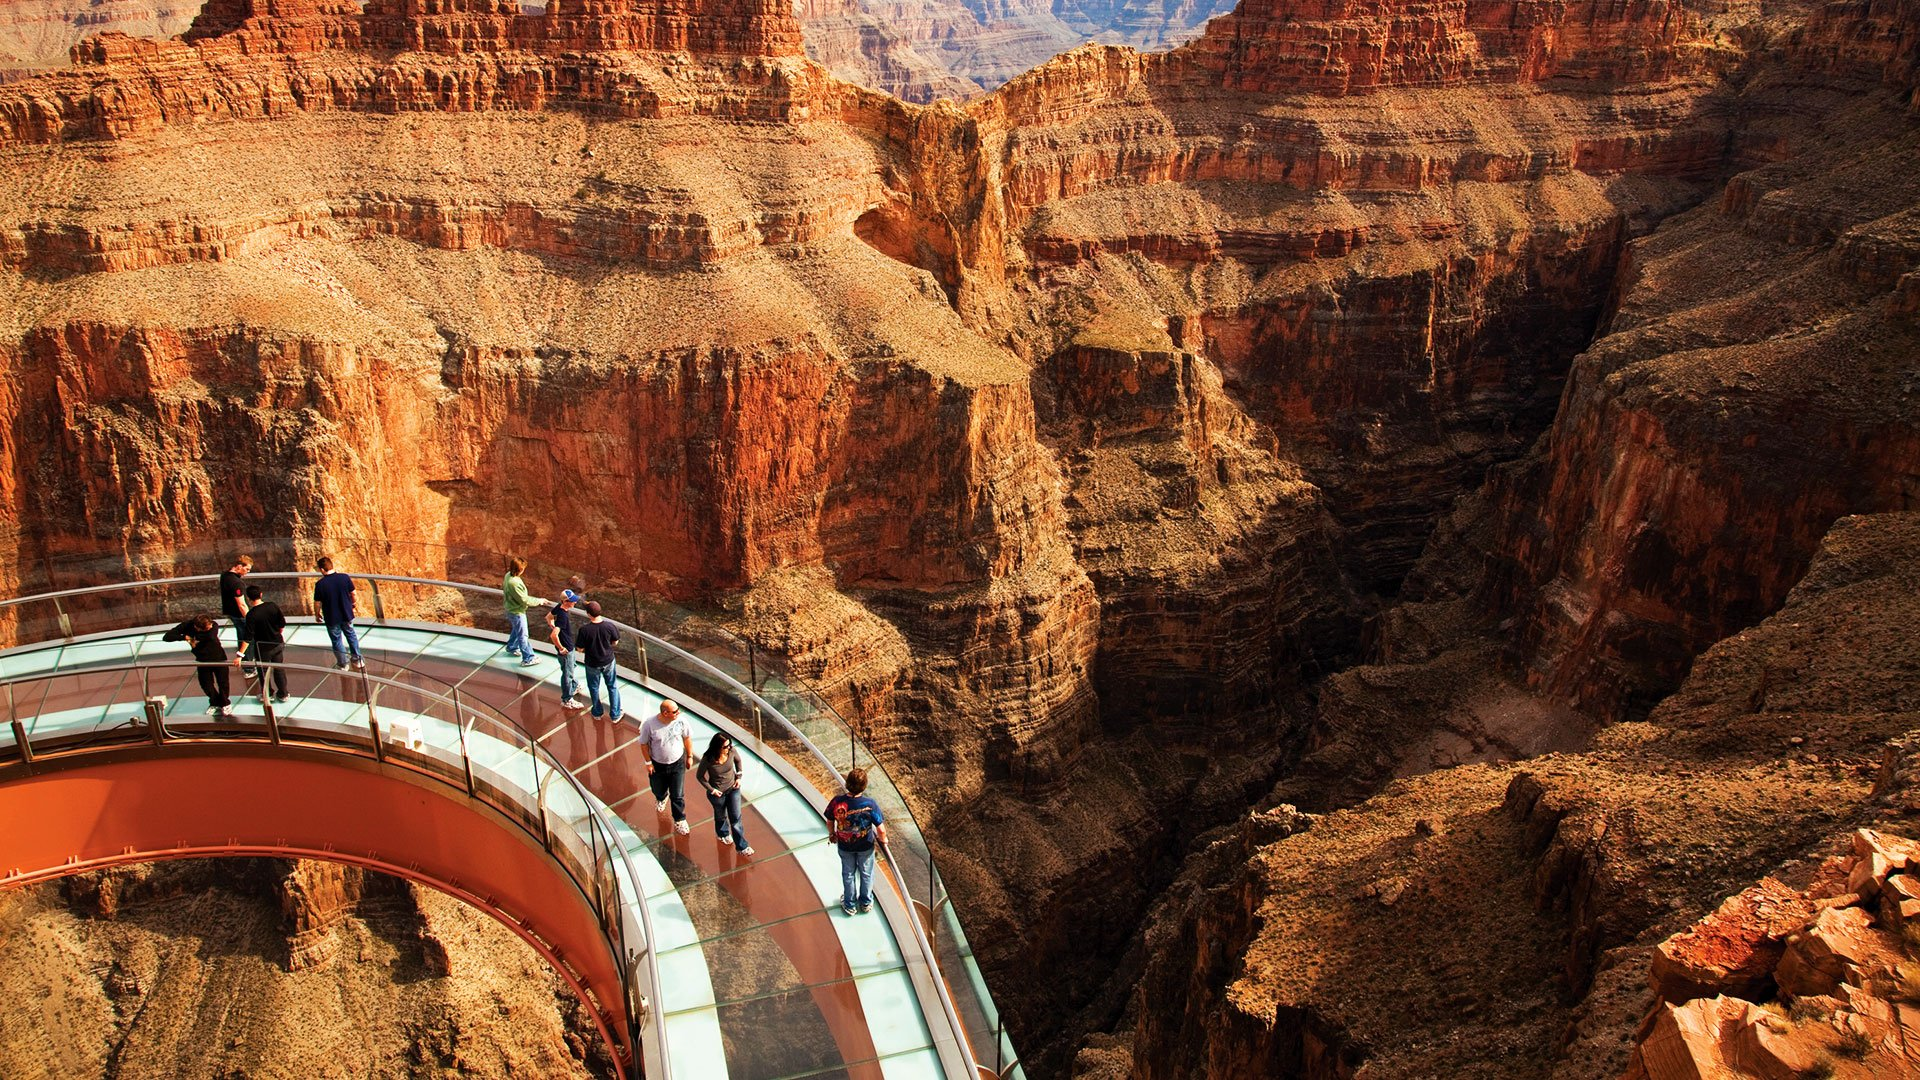 Guests walking on the Skywalk glass bridge viewing the Grand Canyon